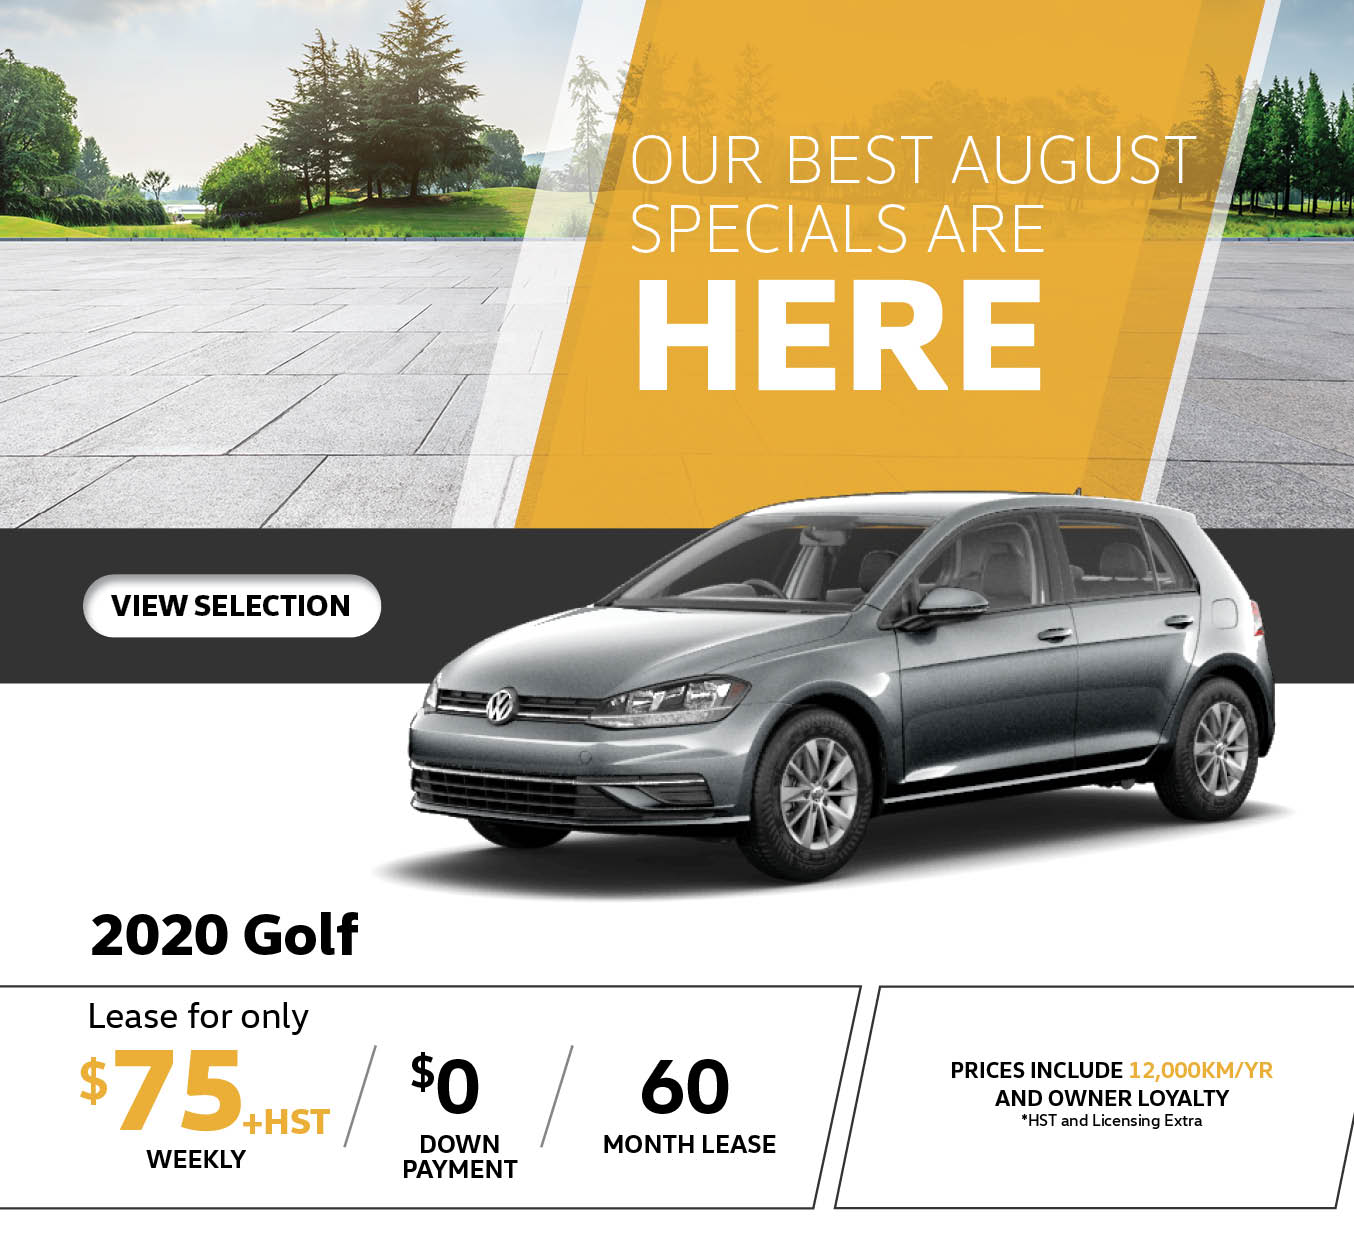 2020 Golf August Special